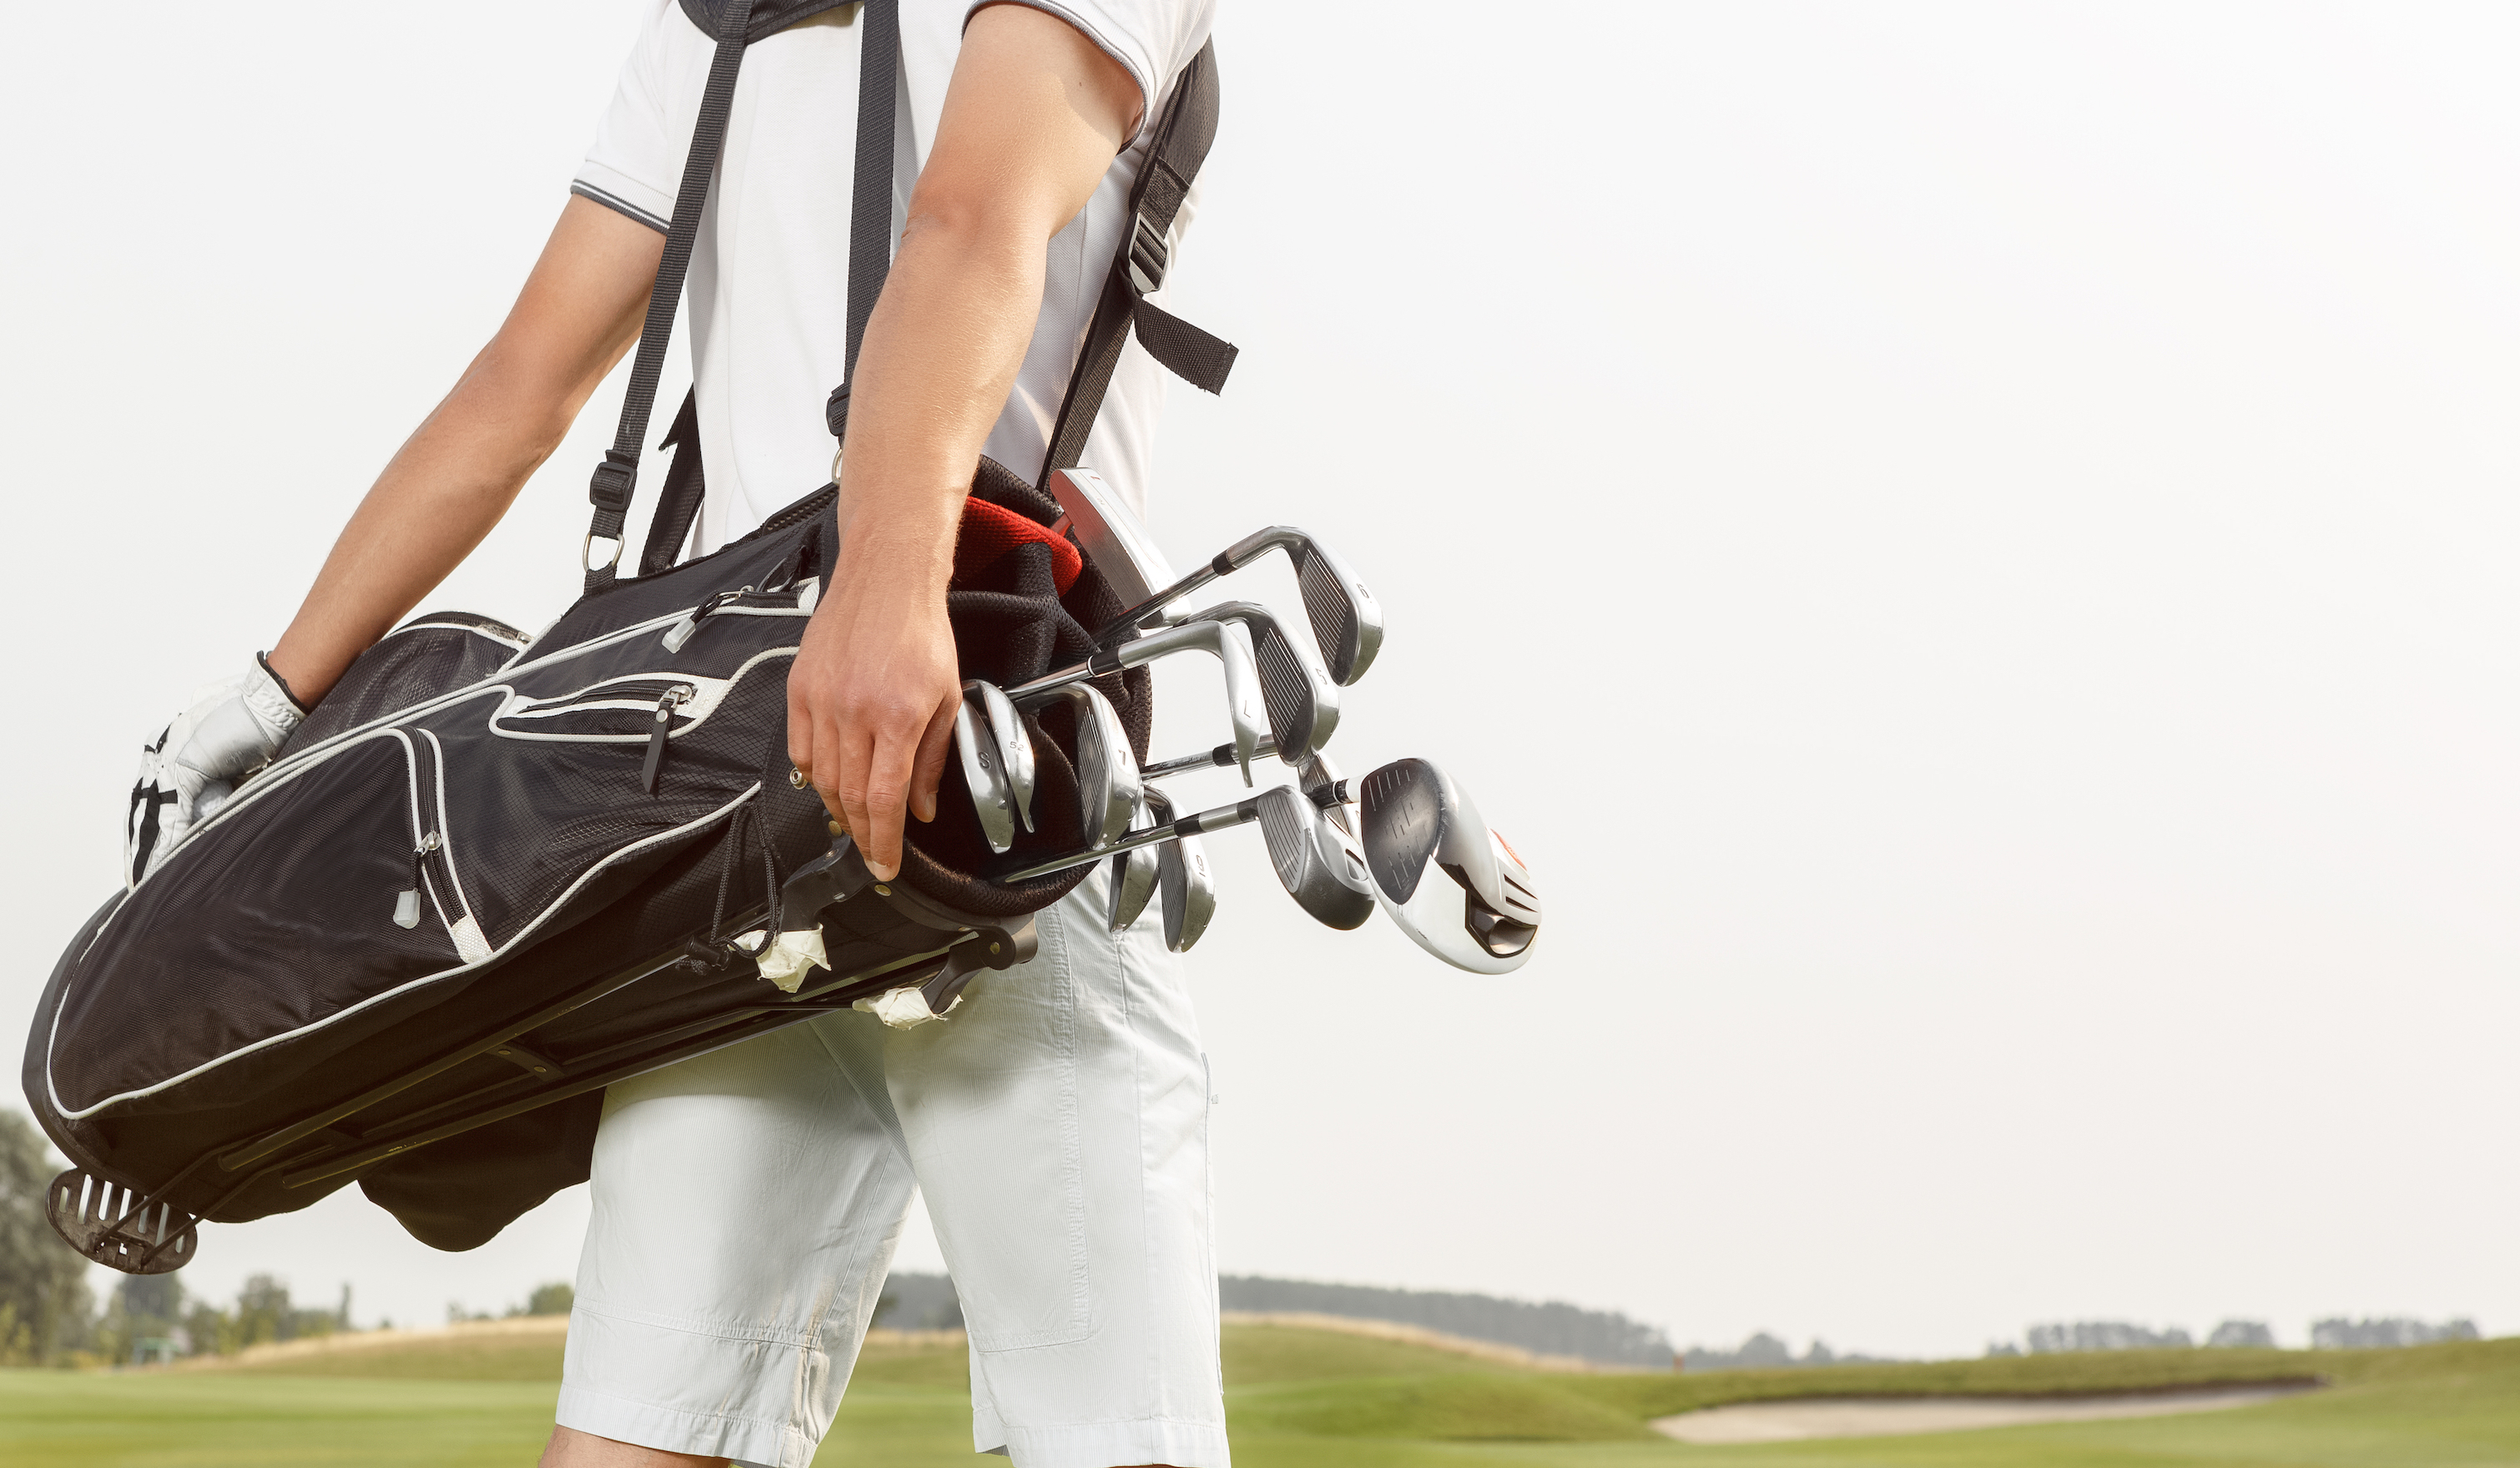 Essential Items You Should Always Have In Your Golf Bag